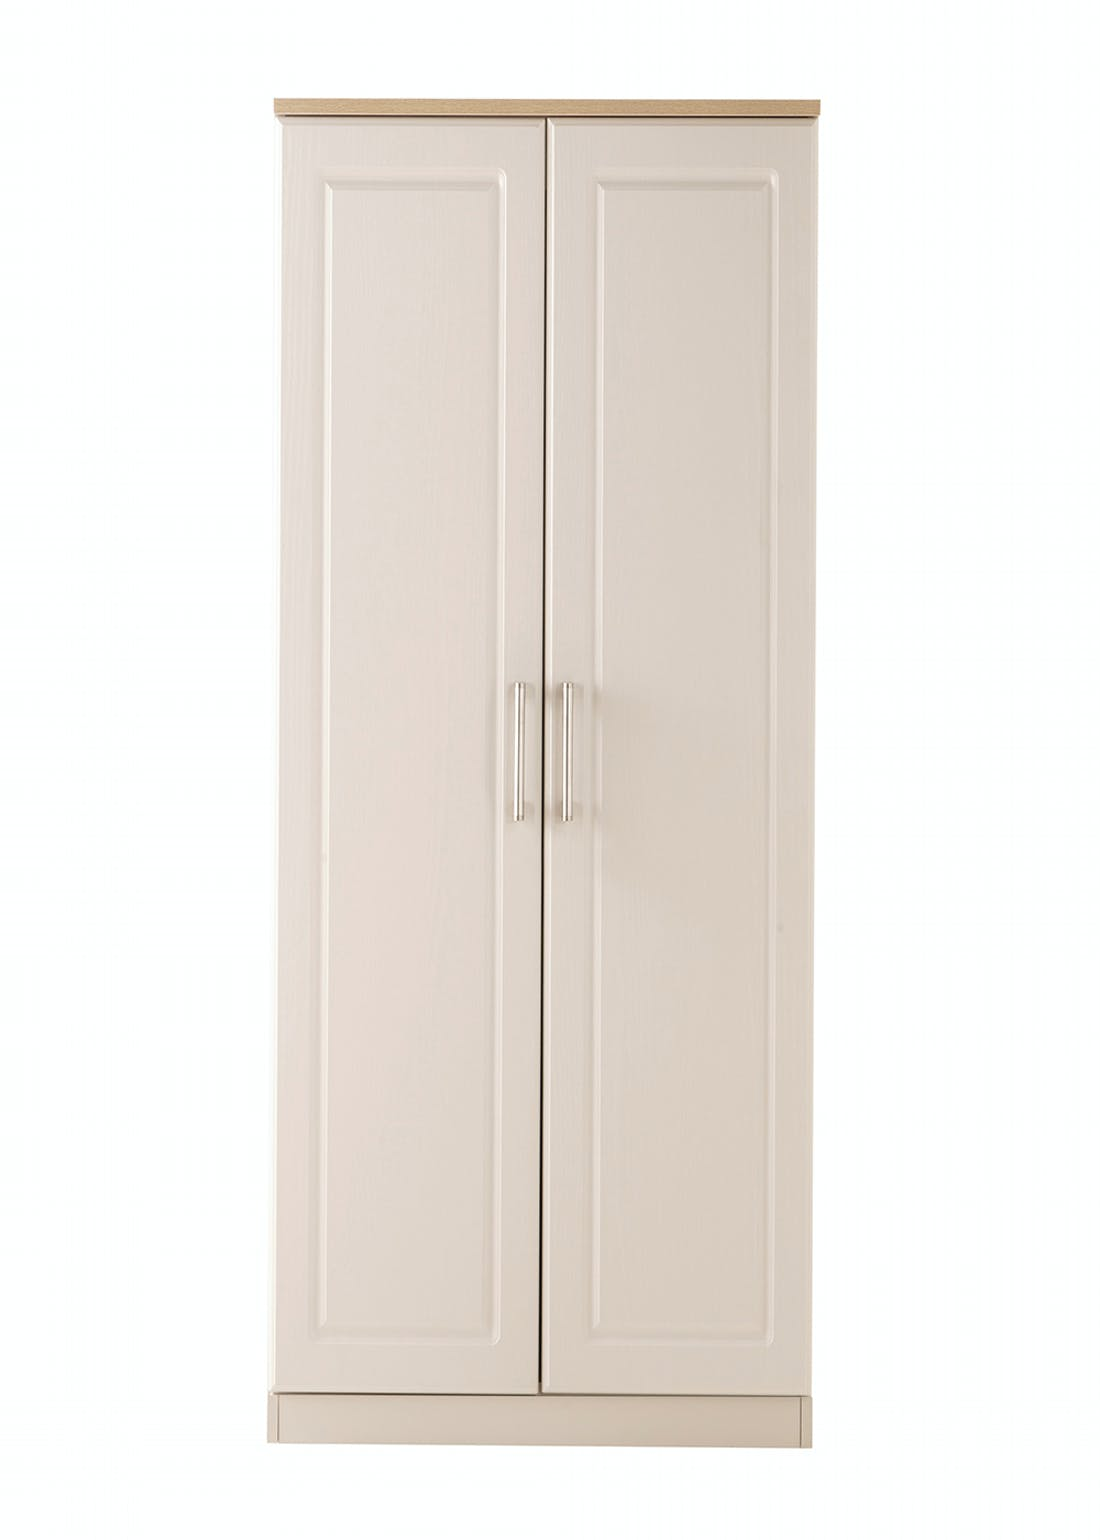 Swift Porto 2 Door Wardrobe (182.5cm x 74cm x 53cm)